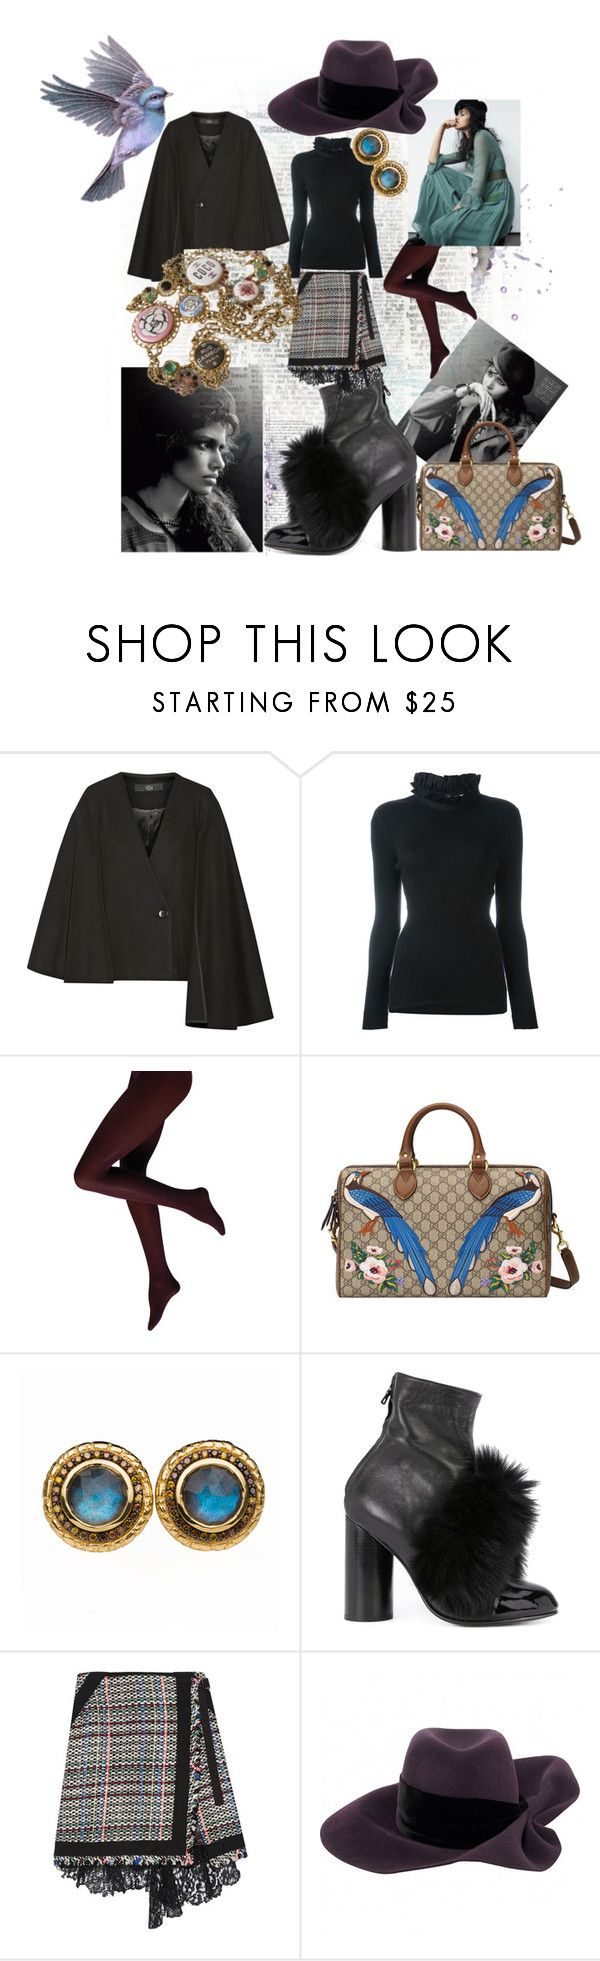 """Без названия #66"" by marina-antipanova ❤ liked on Polyvore featuring TIBI, Fendi, Gucci, Susan Wheeler Design, Valas, Sacai, Louis Vuitton and Chanel"